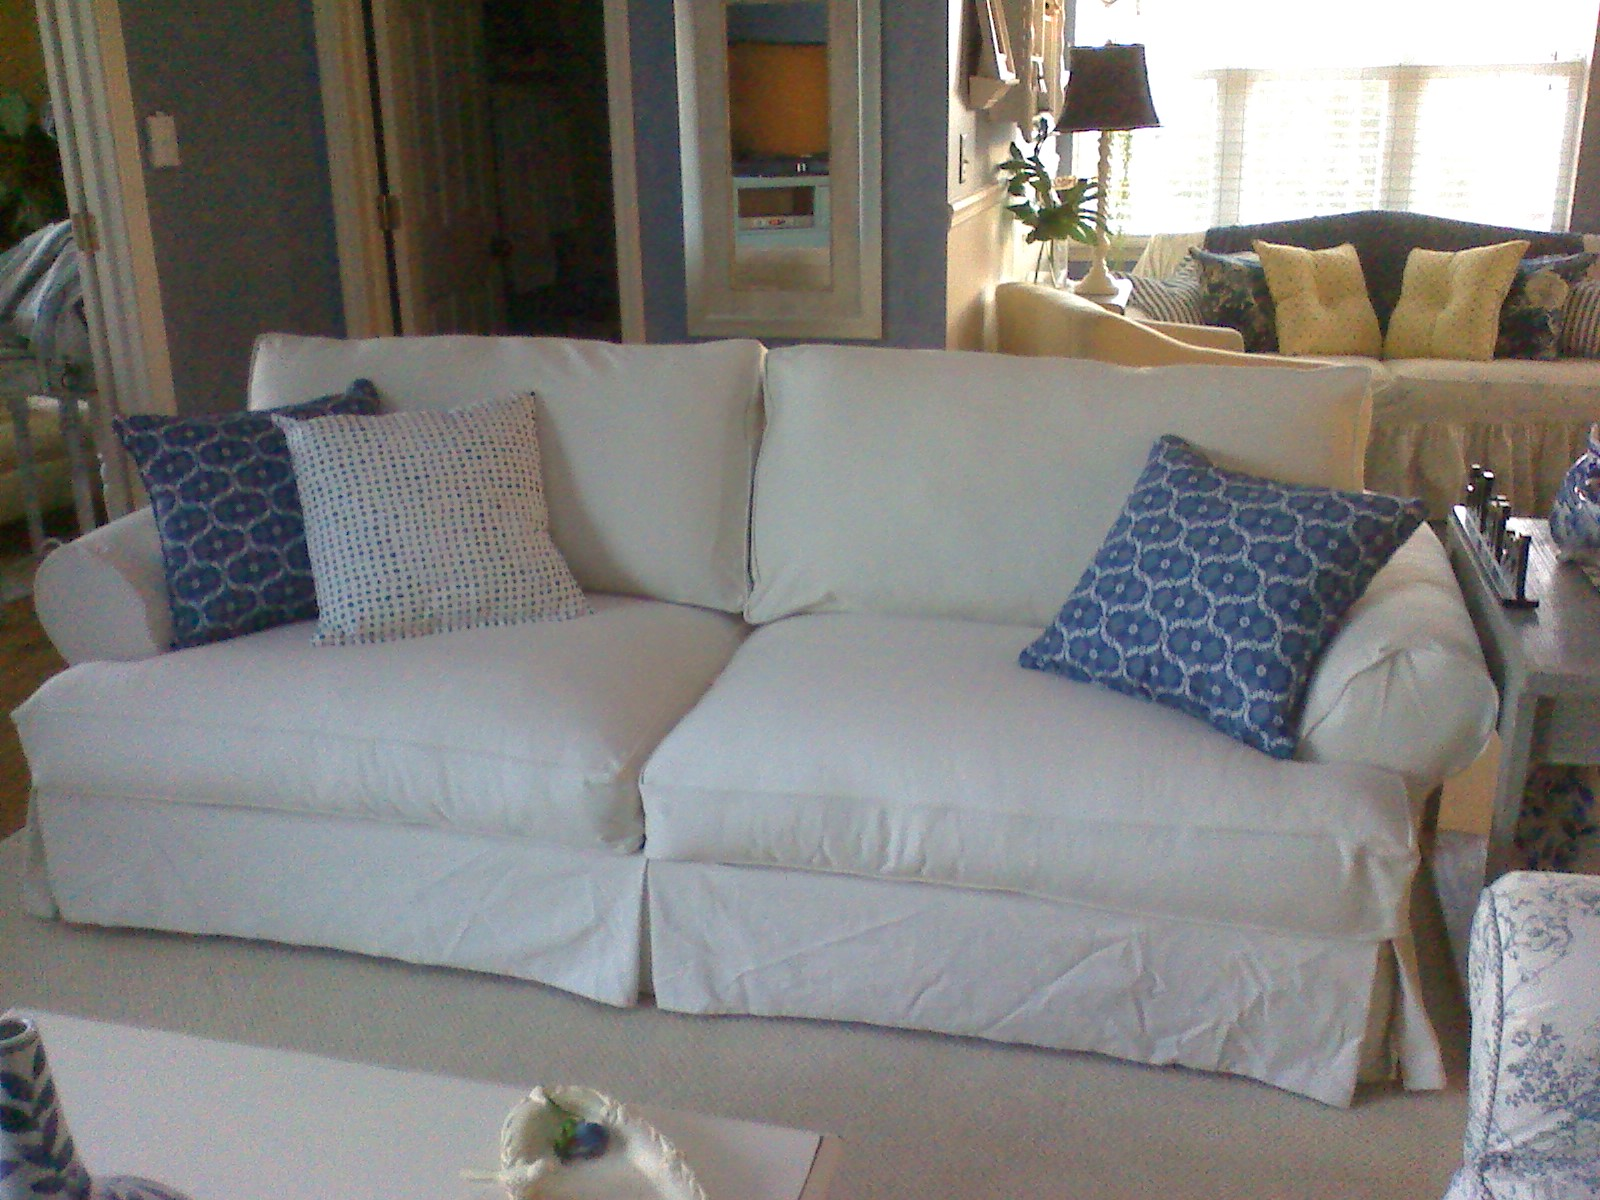 Replacement Slipcover Outlet Replacement Slipcovers for famous furniture